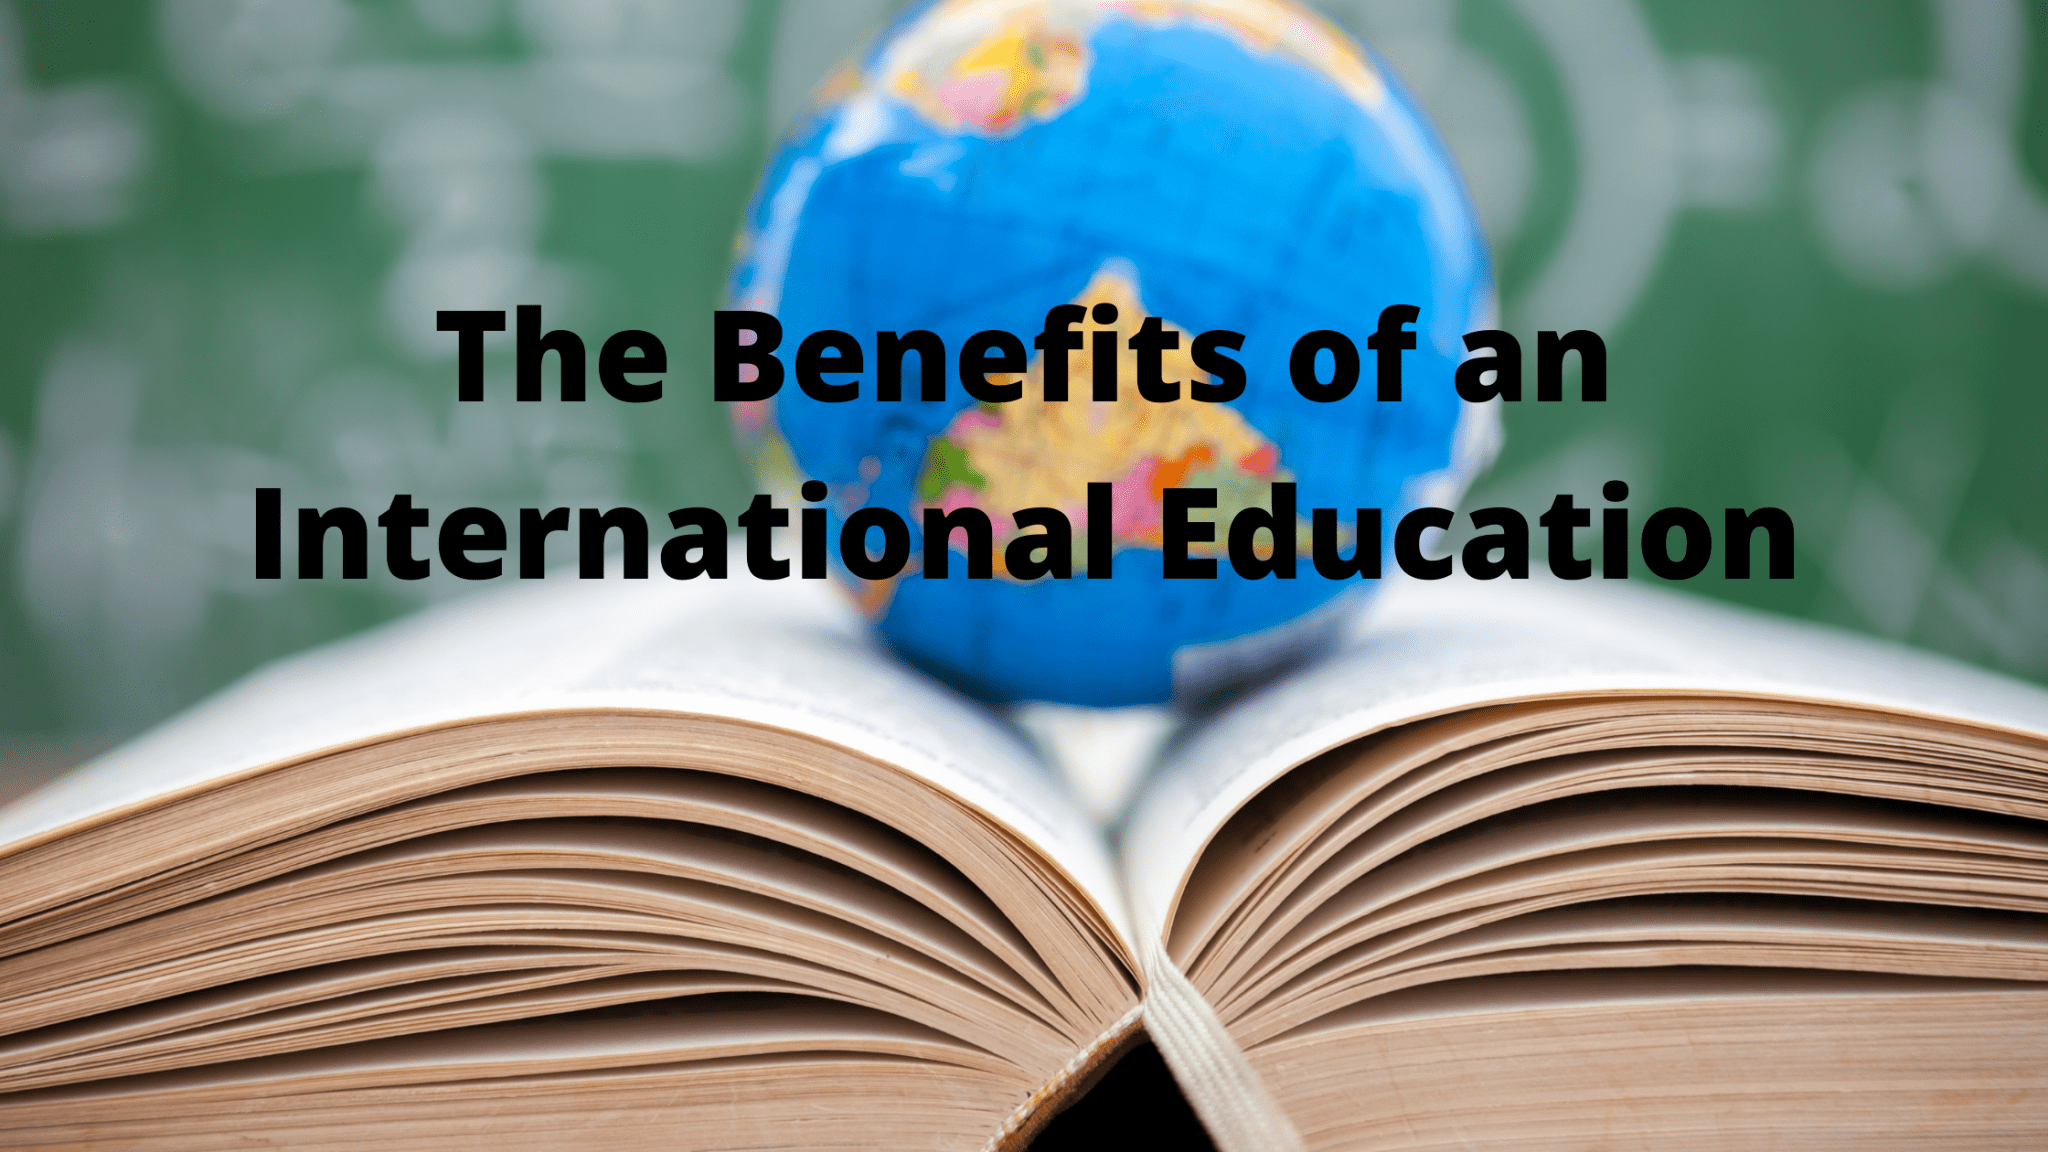 The Benefits of an International Education